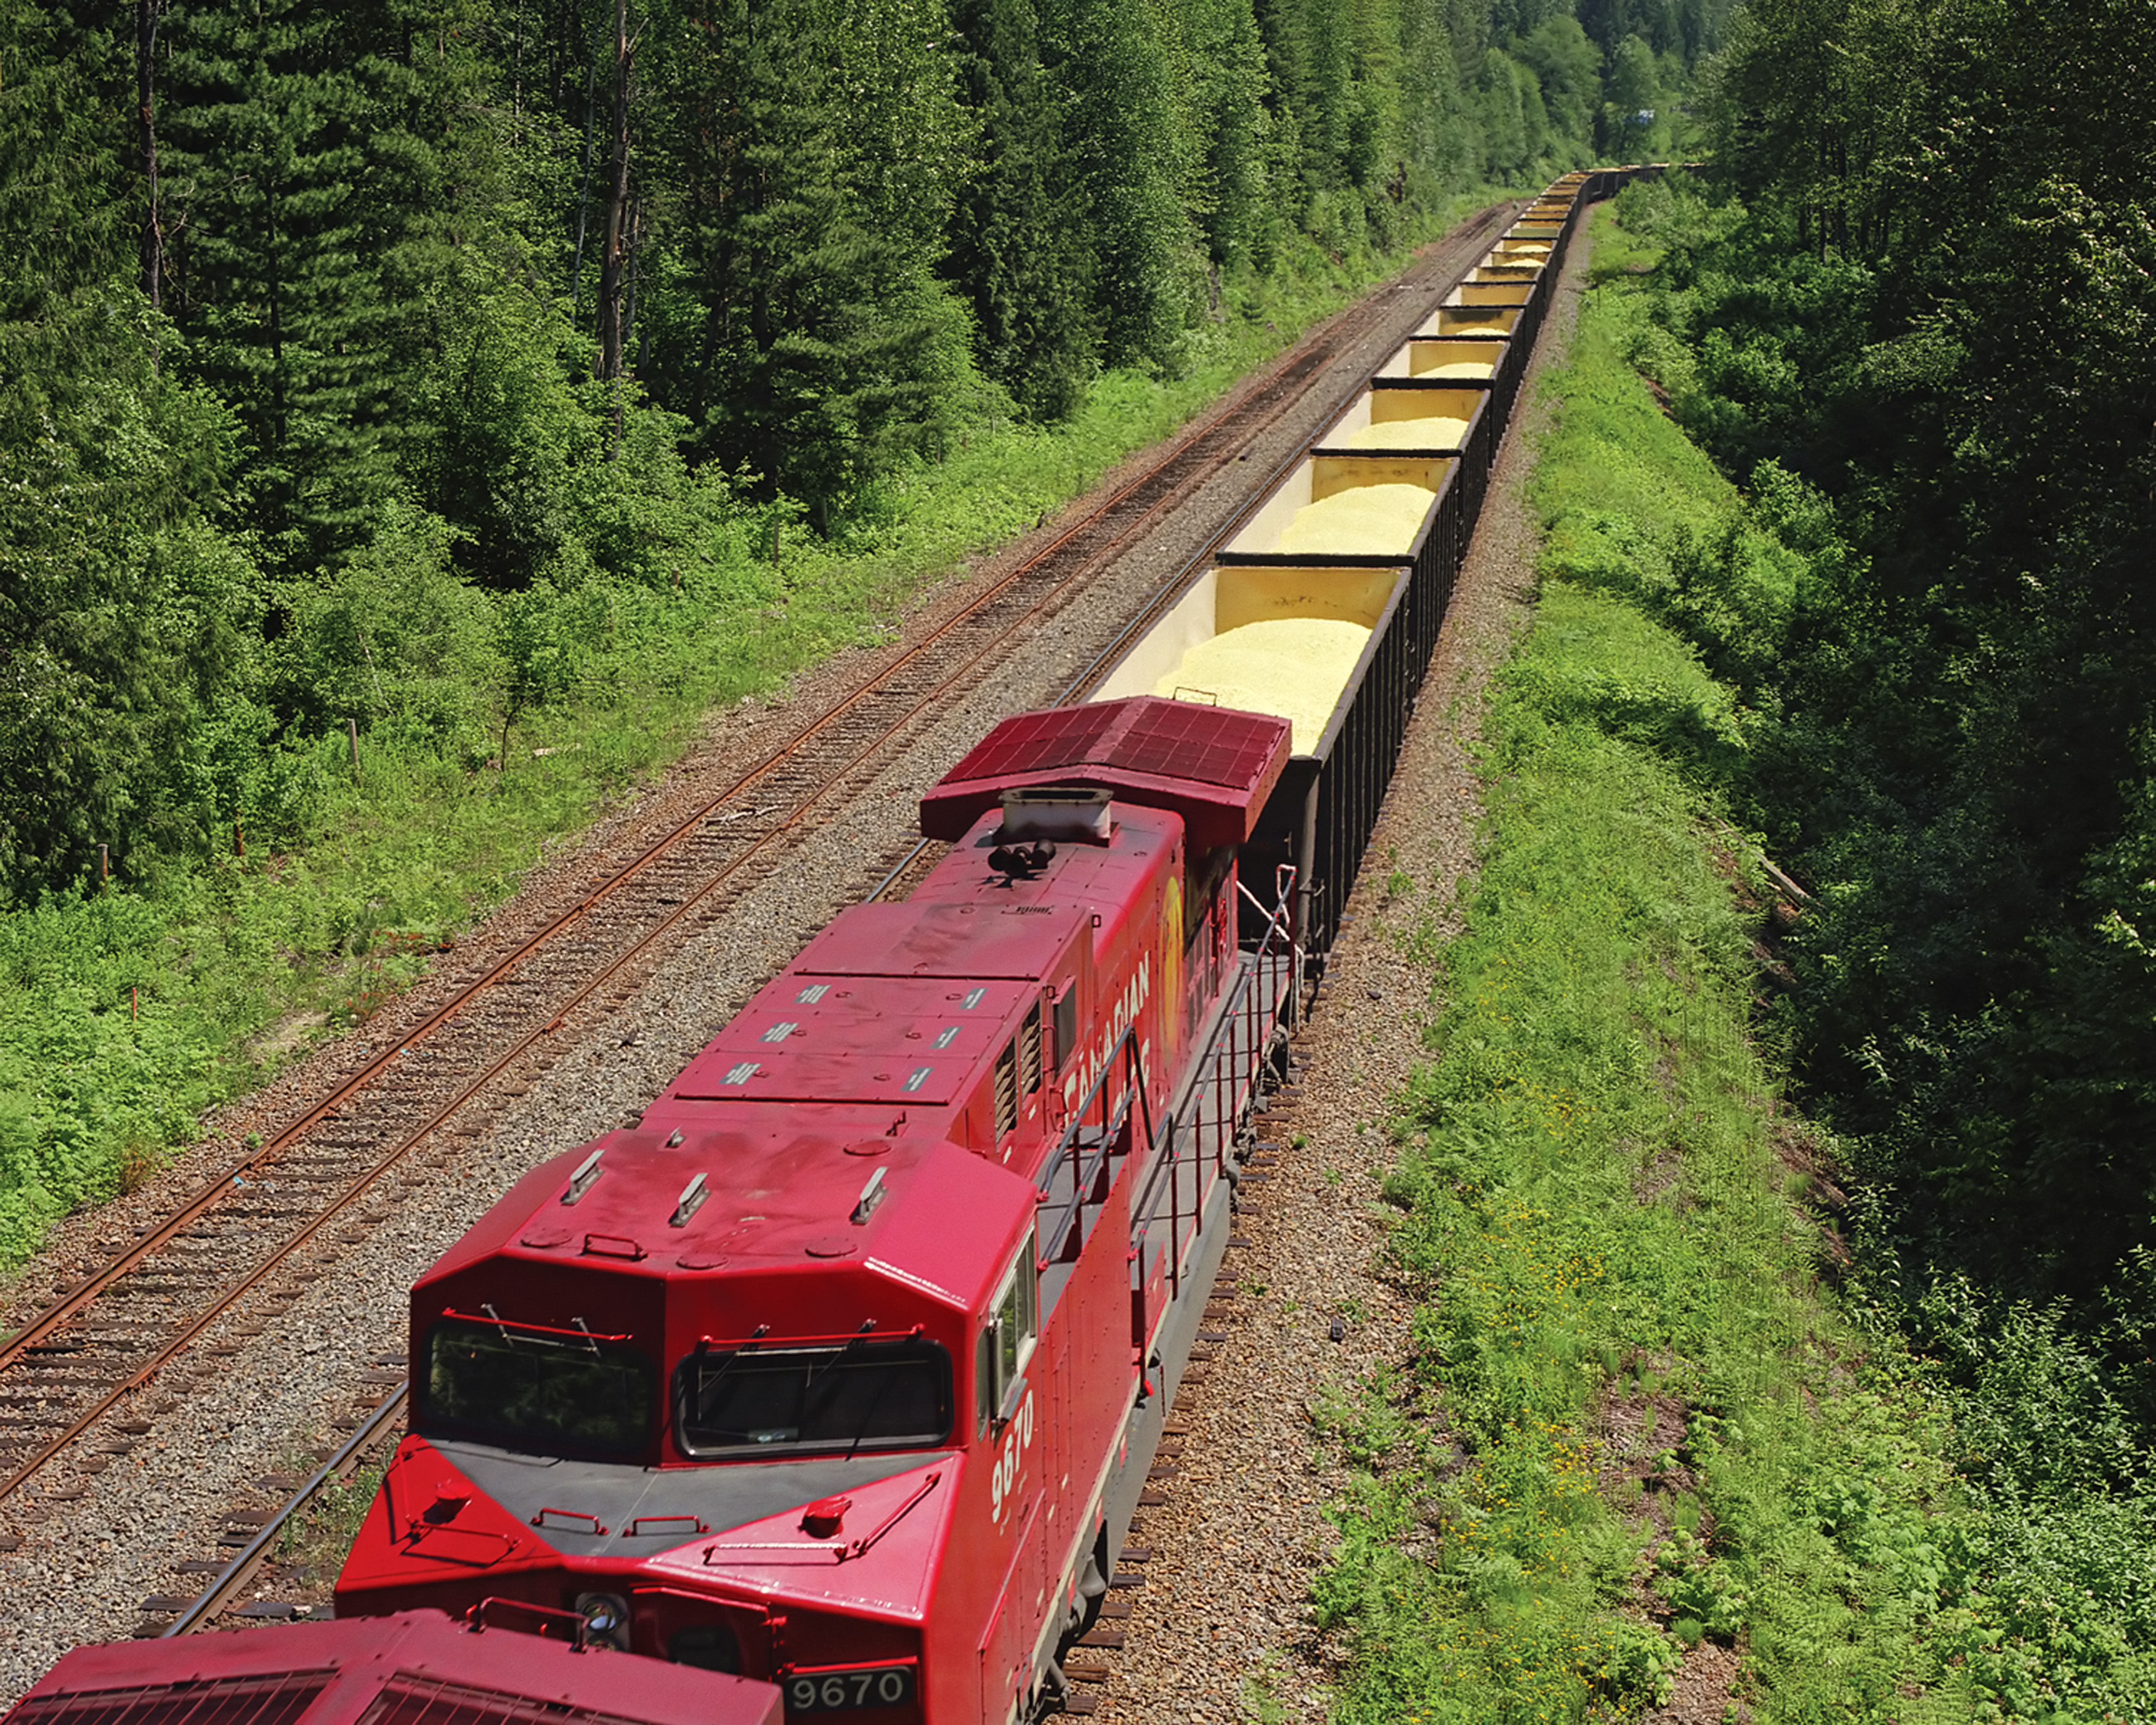 The canadian is via rail canadas flagship train it runs between toronto and vancouver three times a week traveling